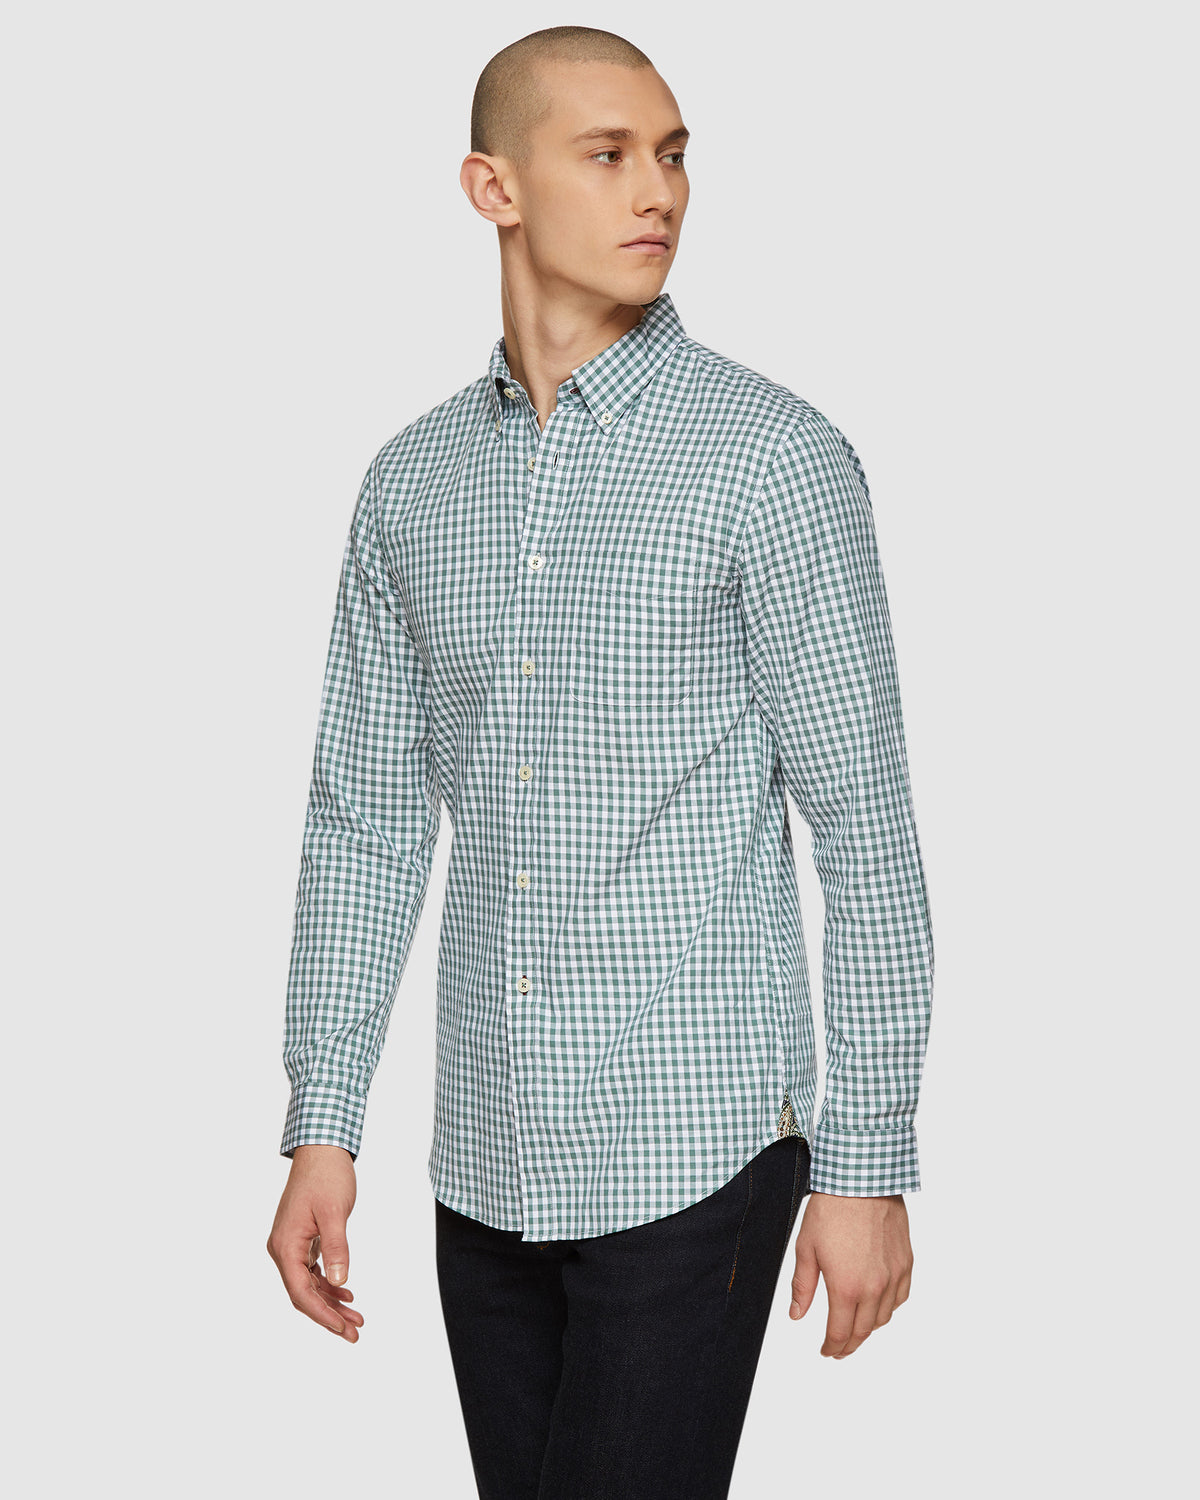 UXBRIDGE CHECKED SHIRT